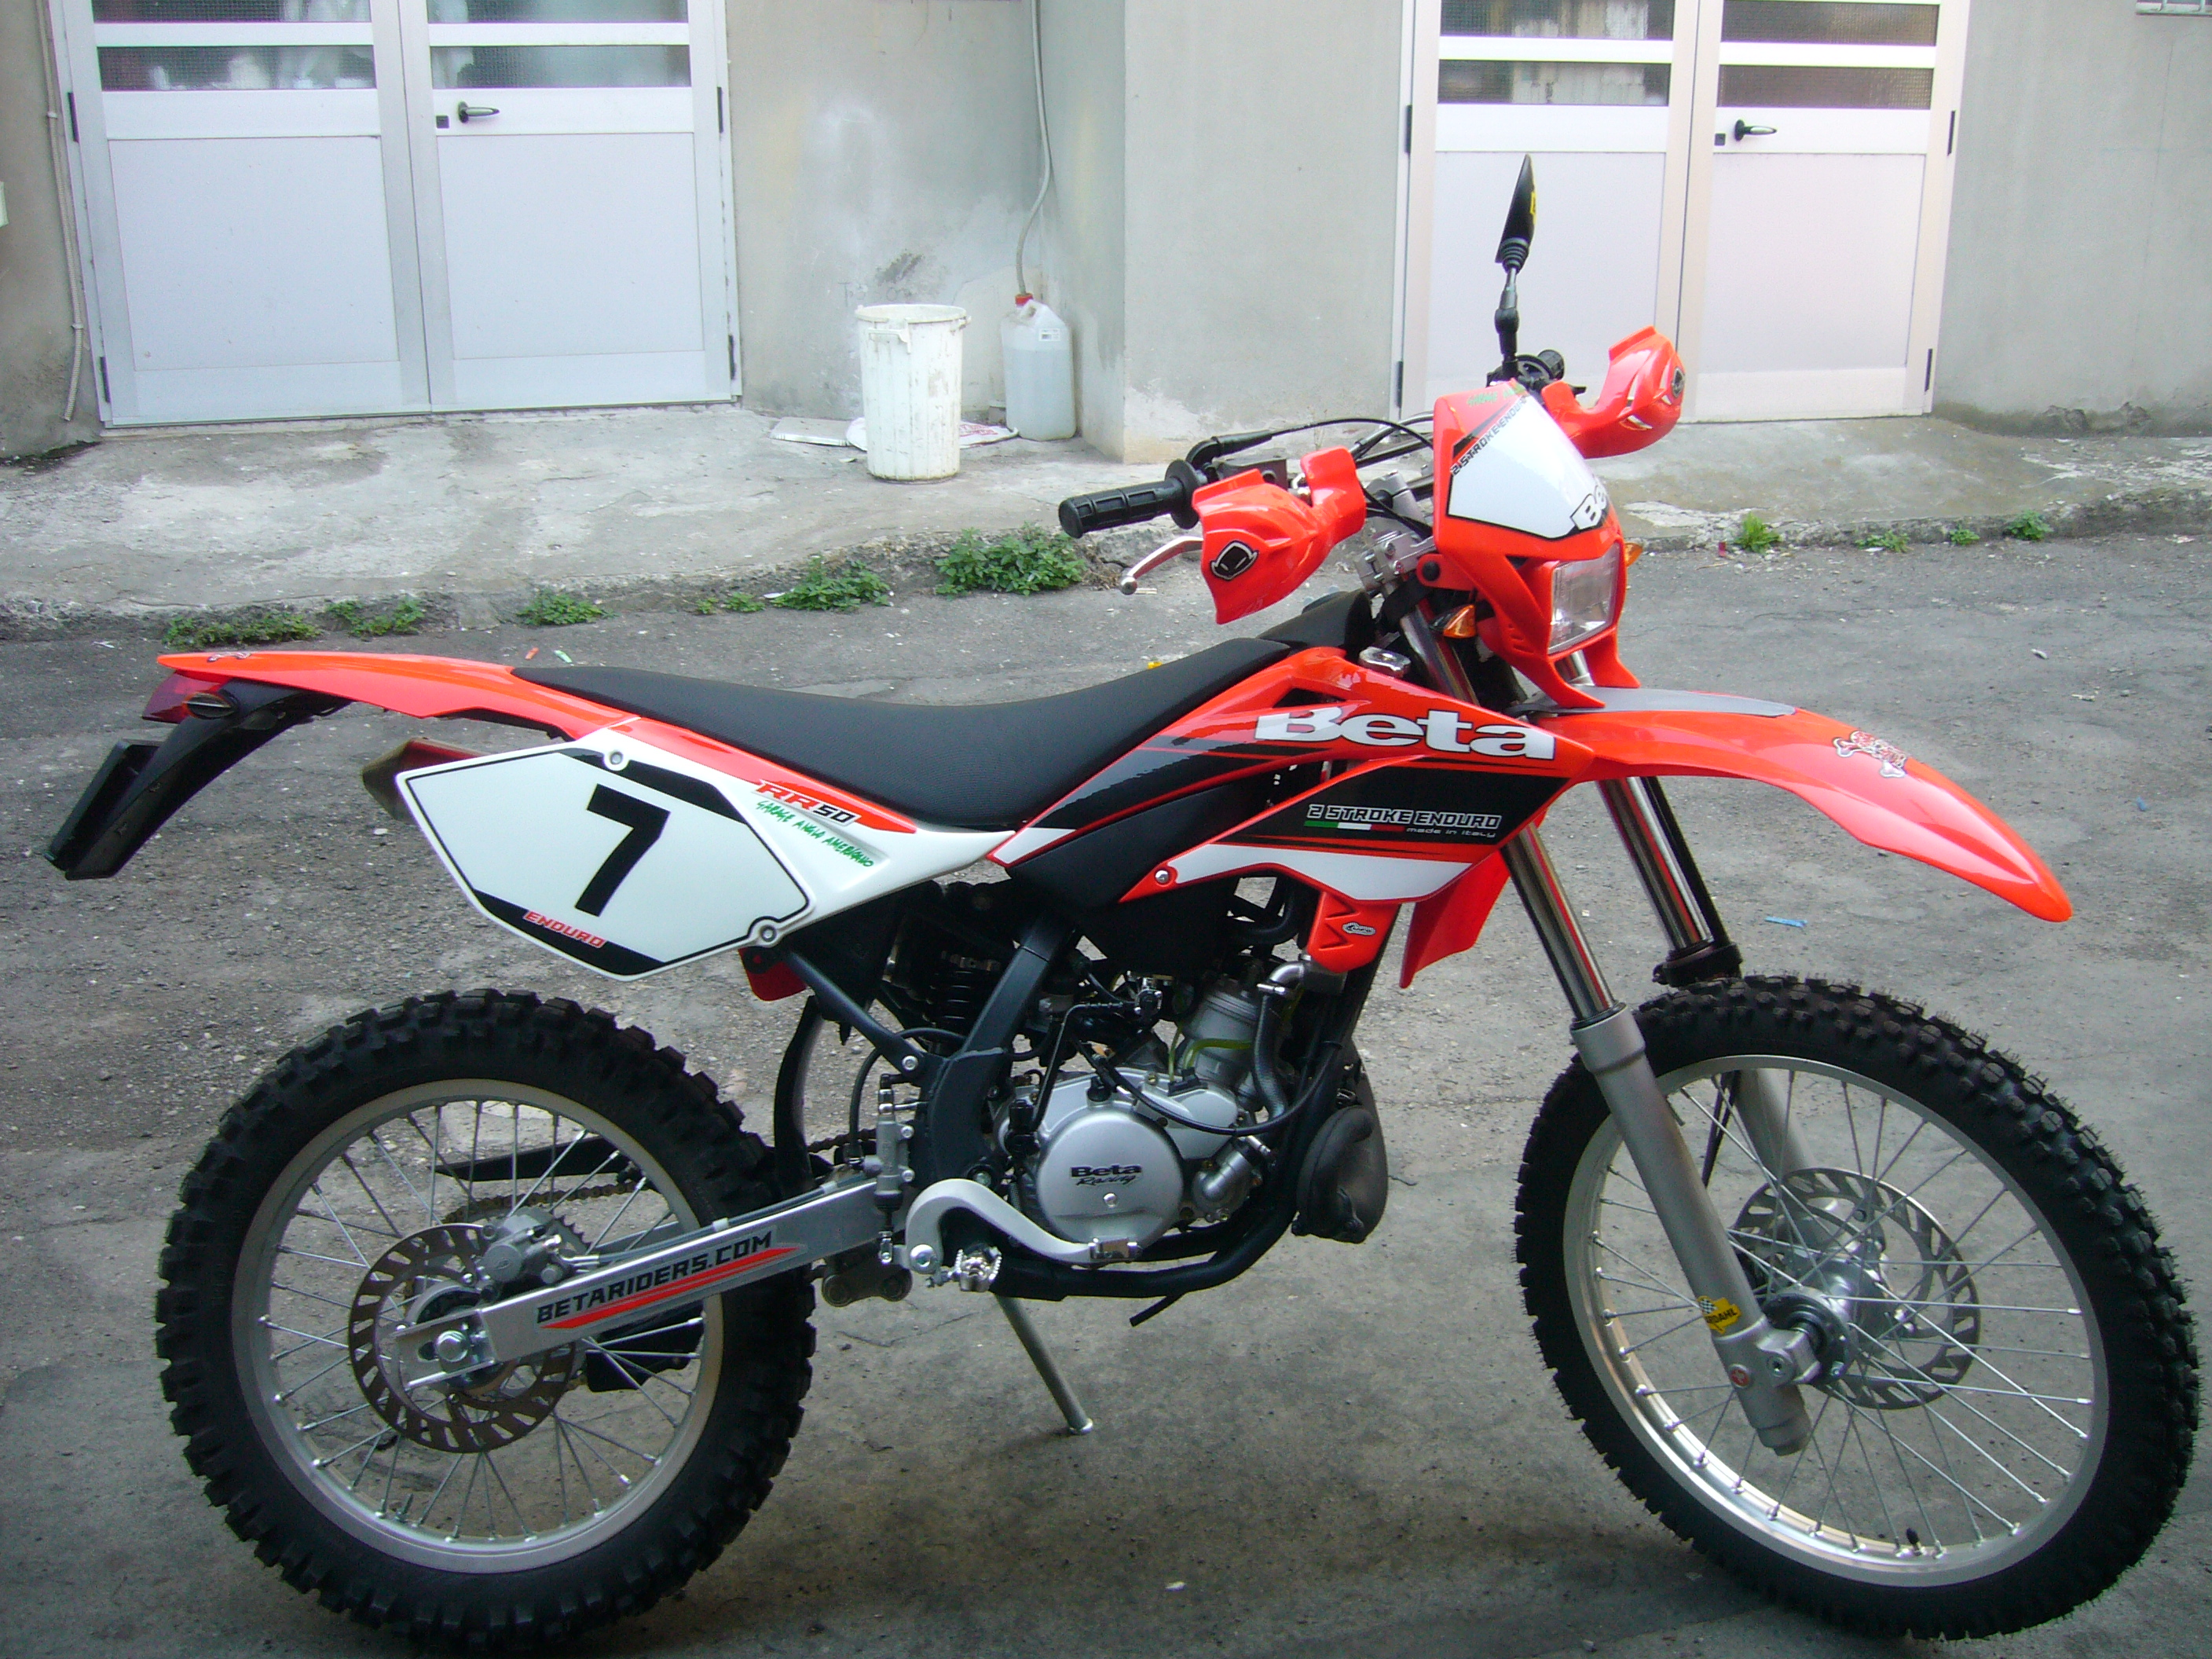 Beta RR 50 Super Motard 2003 images #64002